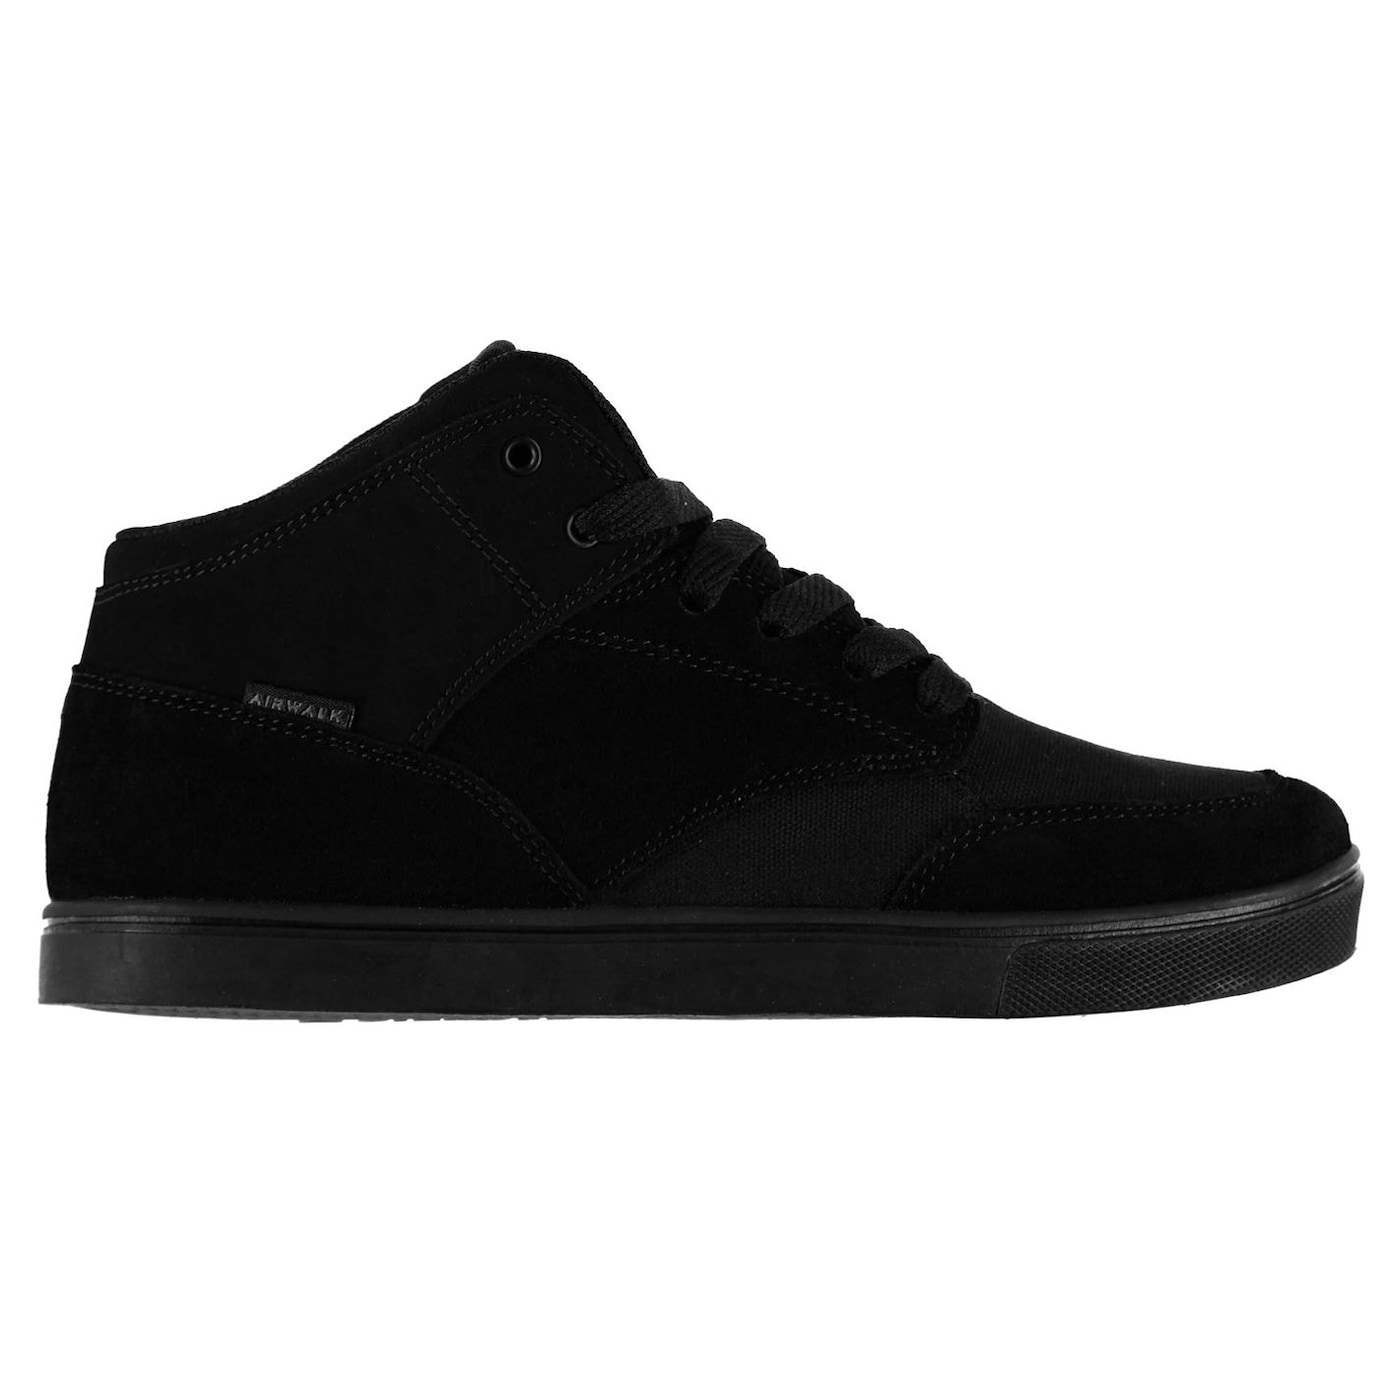 Airwalk Breaker Mid Junior Boys Skate Shoes